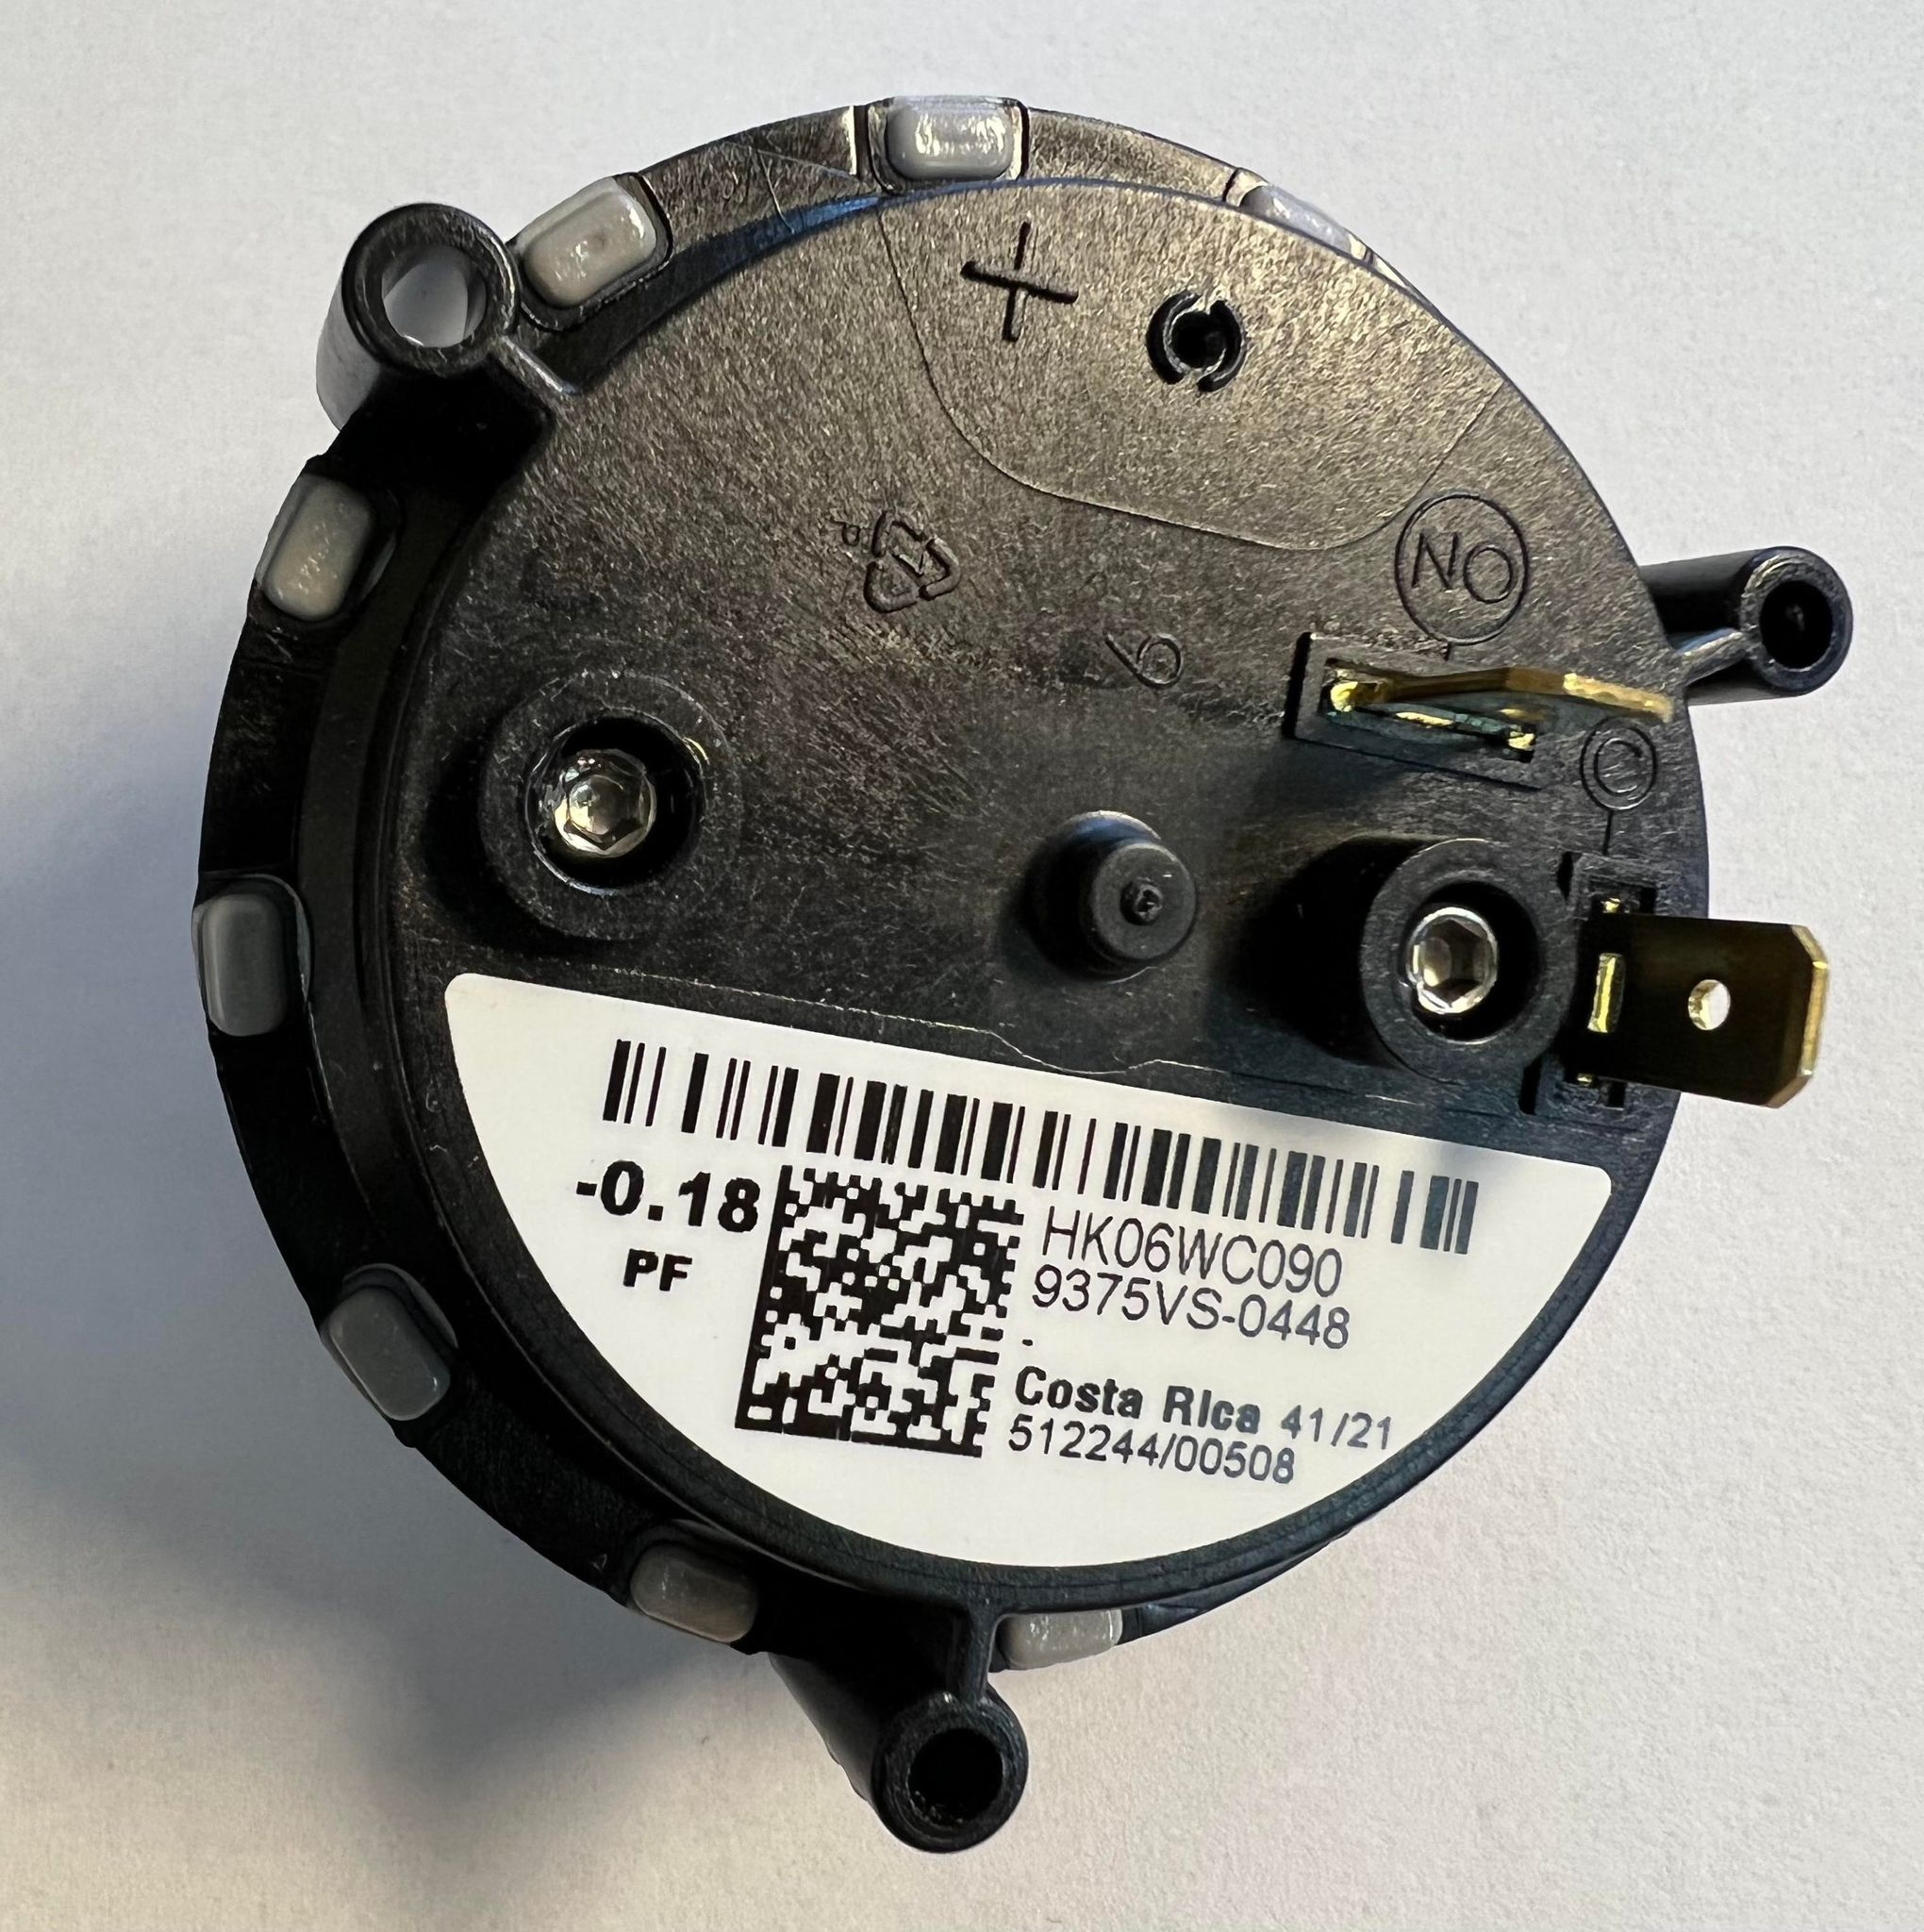 Carrier Draft Pressure Switch HK06WC090